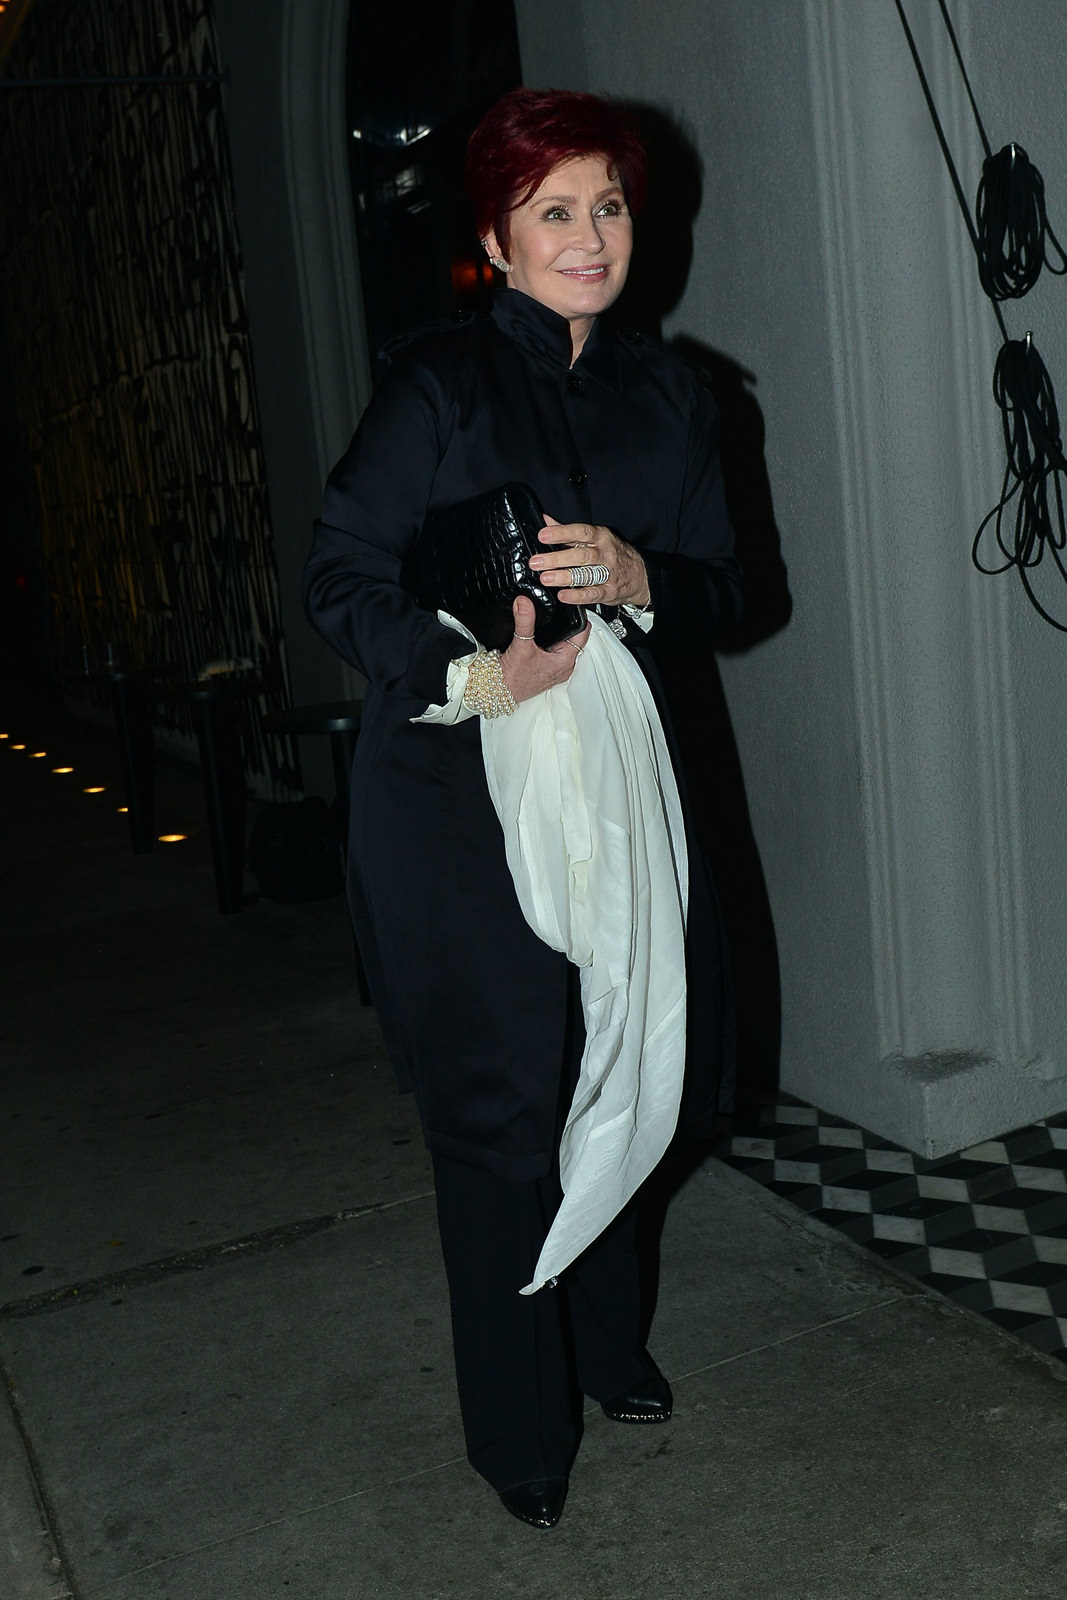 Sharon Osbourne Photo Gallery